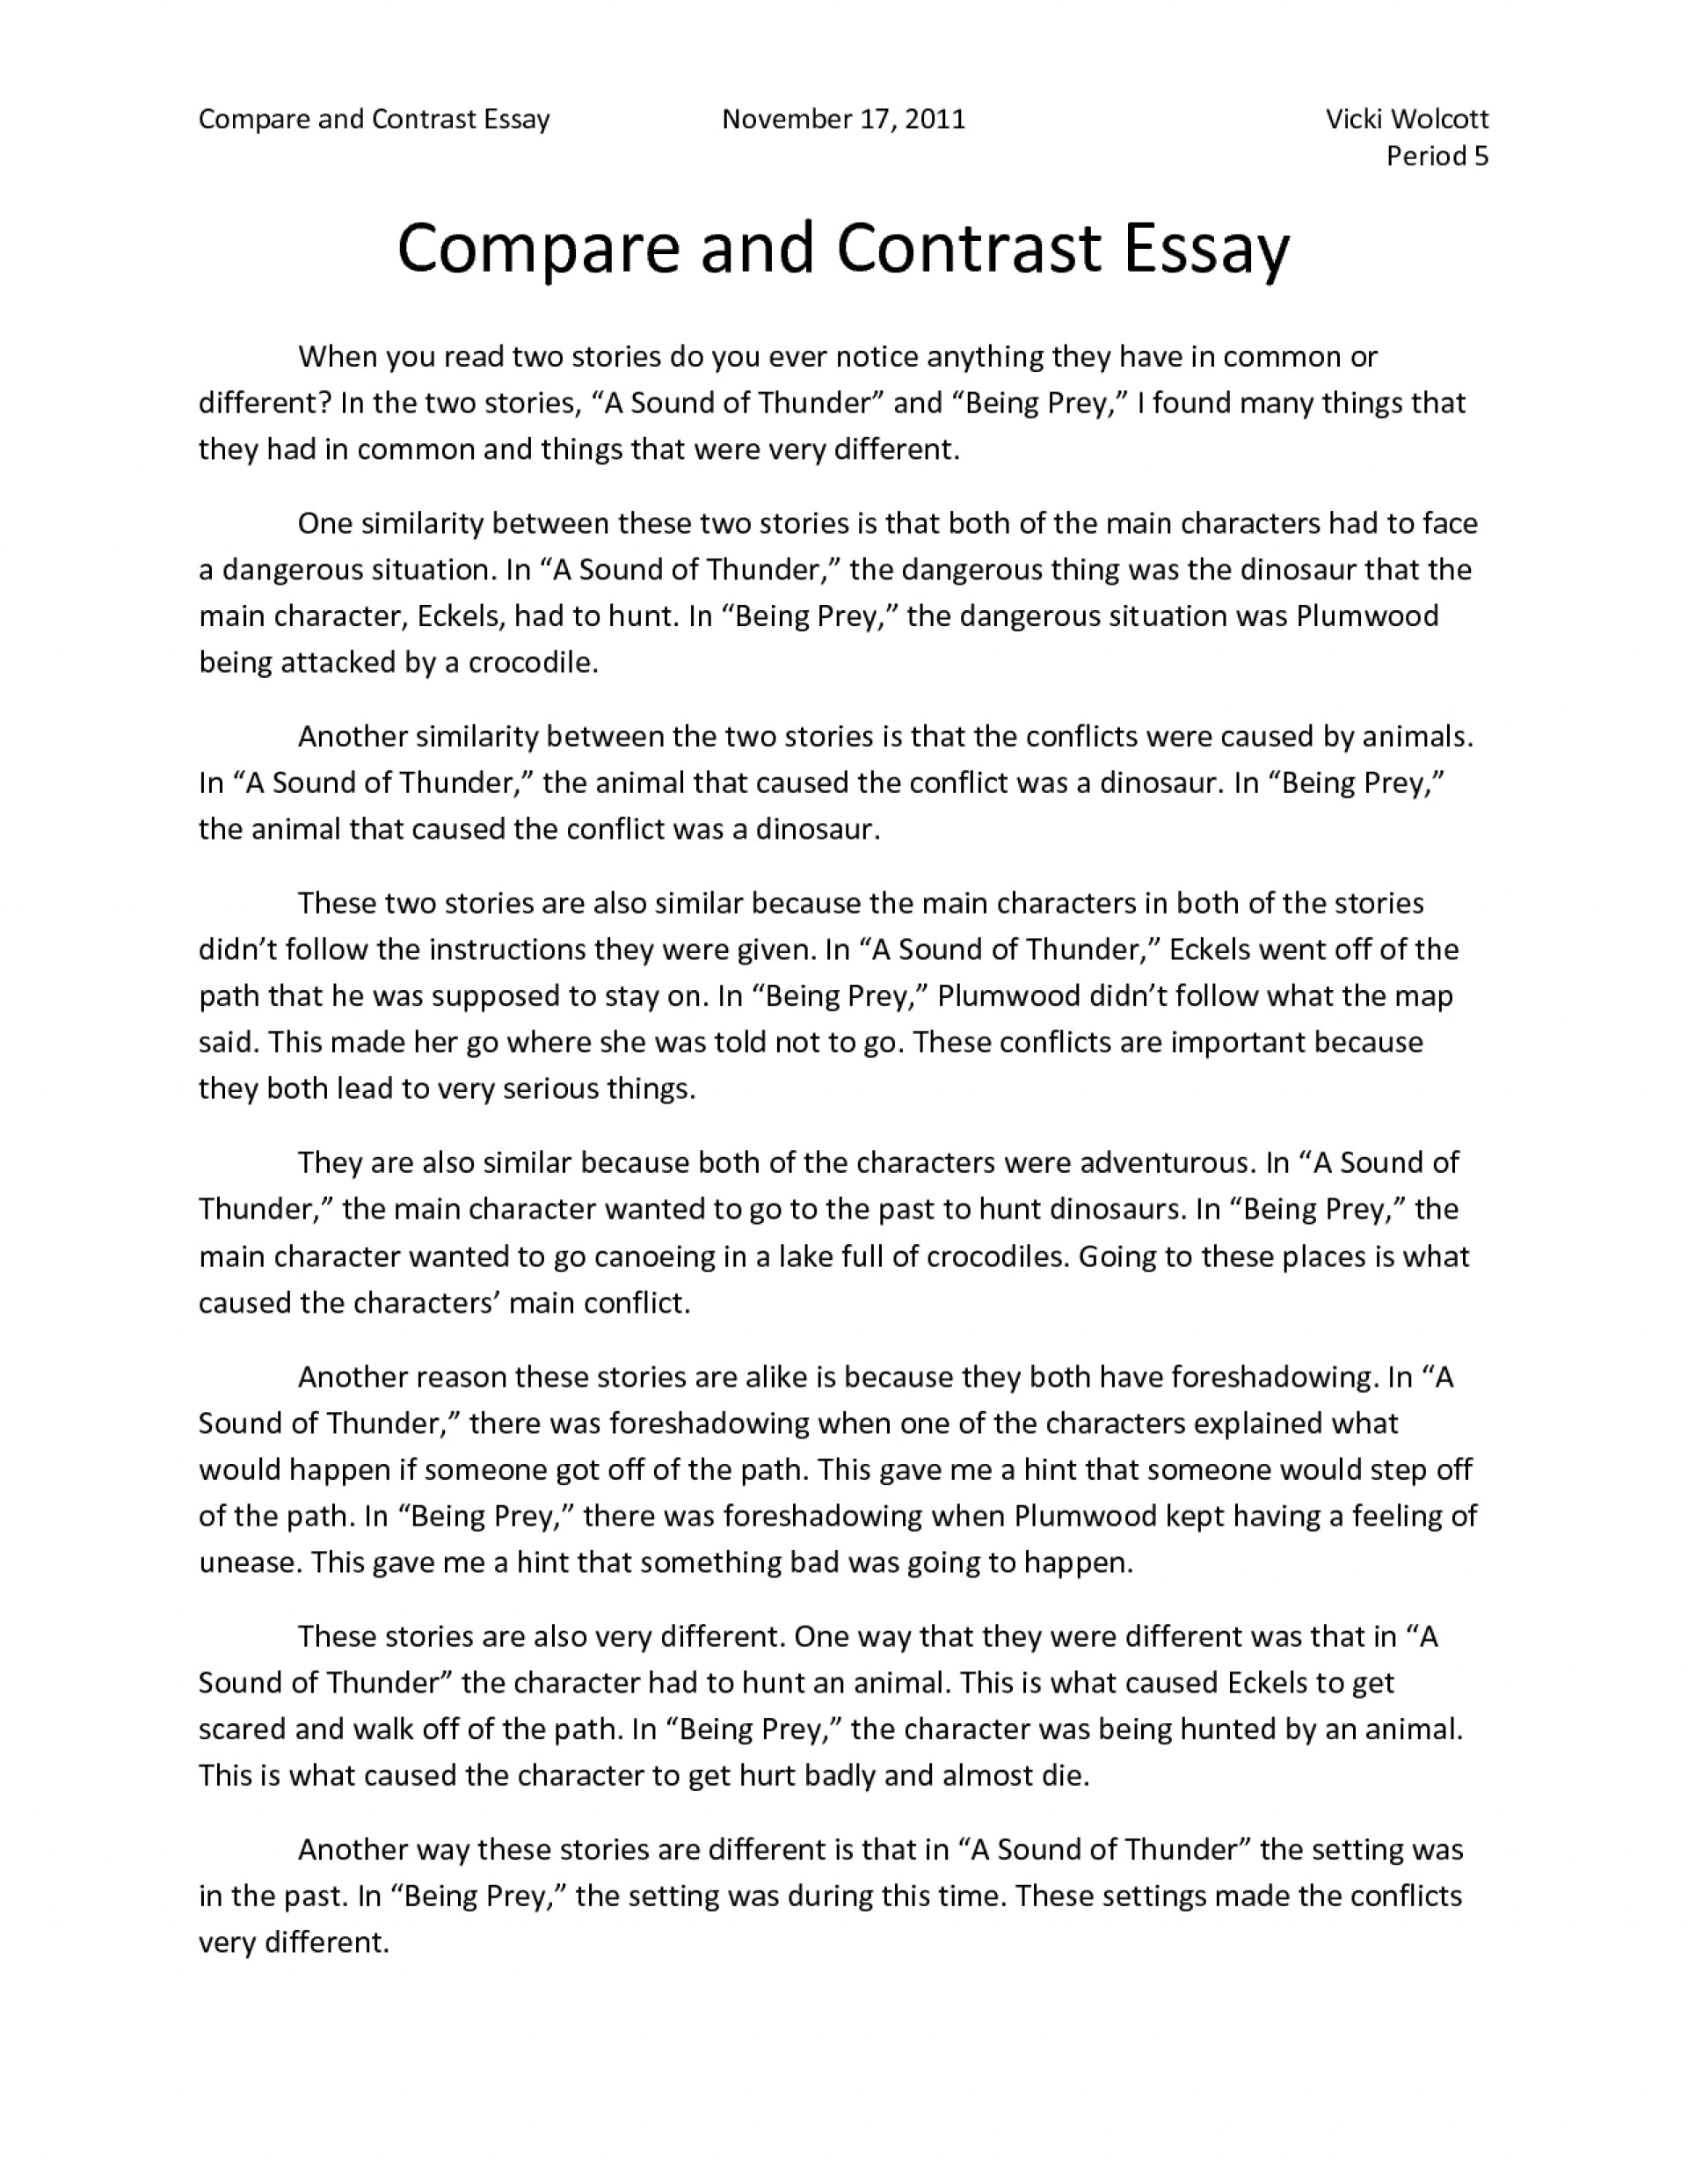 002 Essay Example Compare And Contrast Basic Unforgettable Ideas For 5th Grade Funny Title 1920